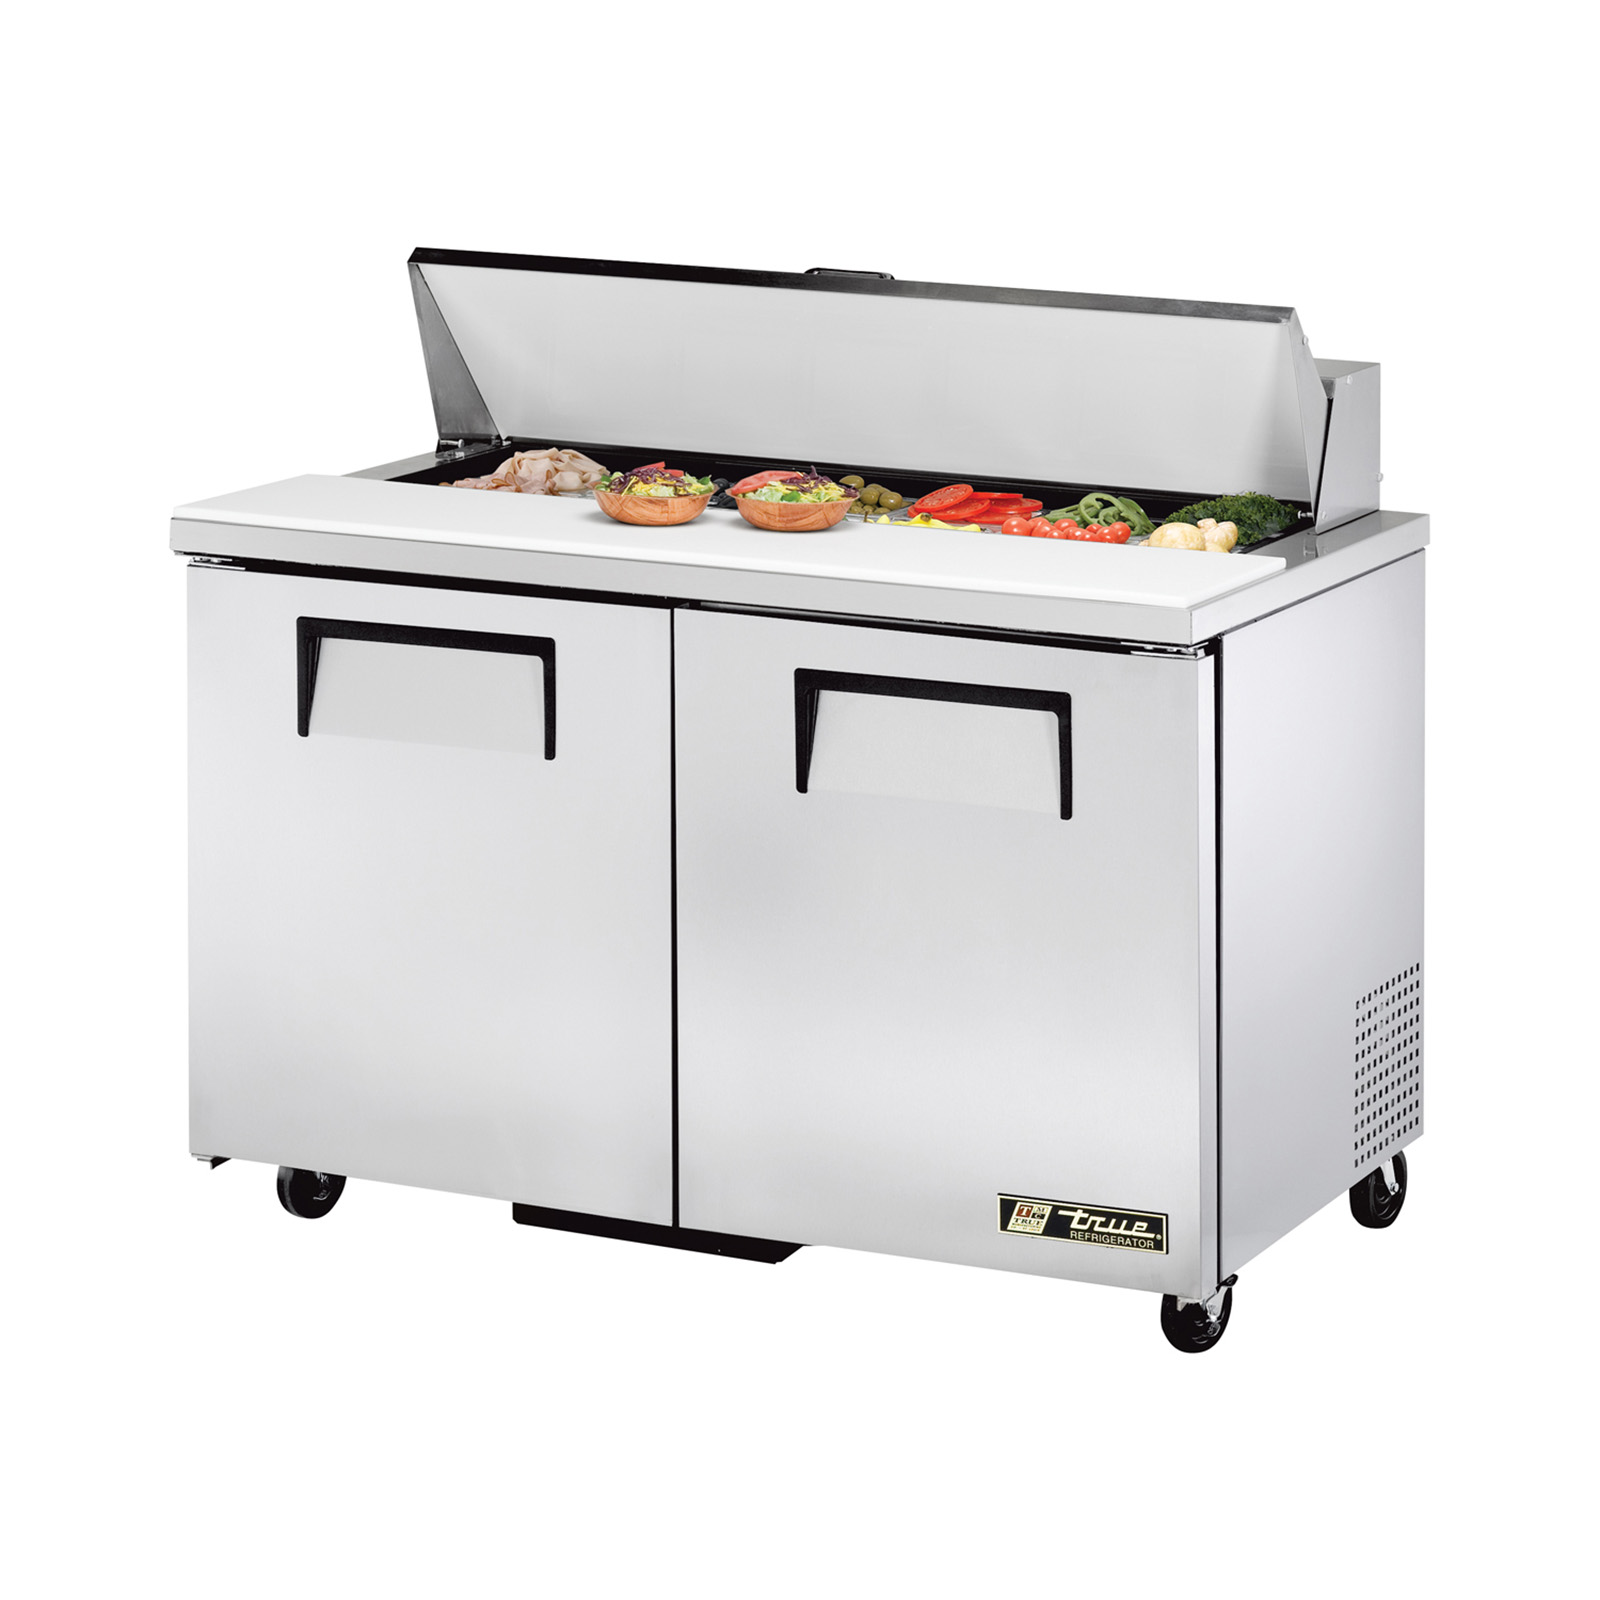 TSSU-48-12 – True Sandwich/Salad Prep Unit